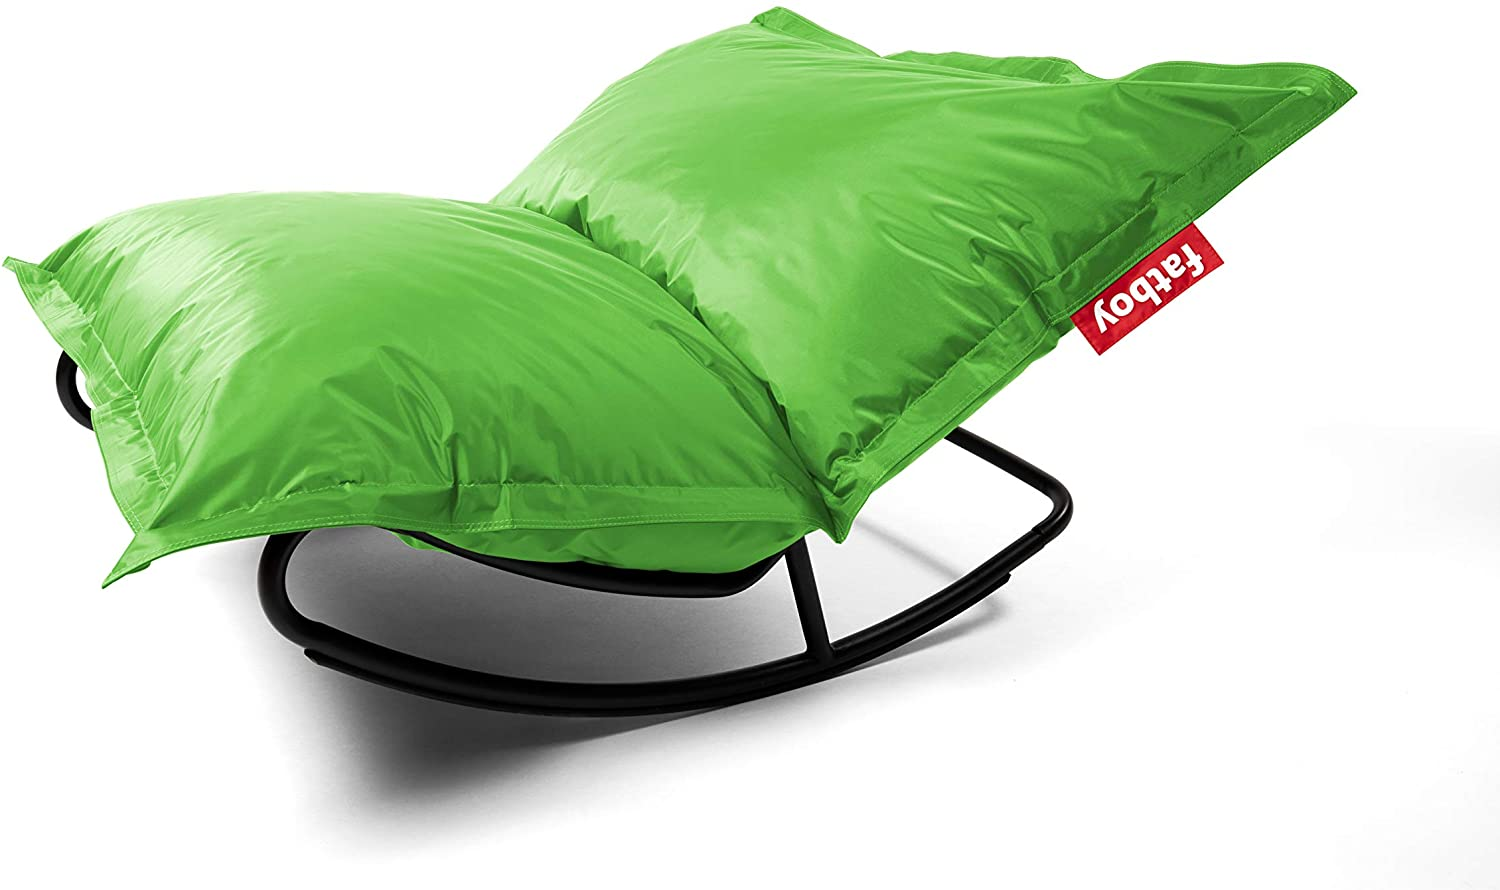 Fatboy Original n Roll Bean Bag Rocking Chair, Grass Green